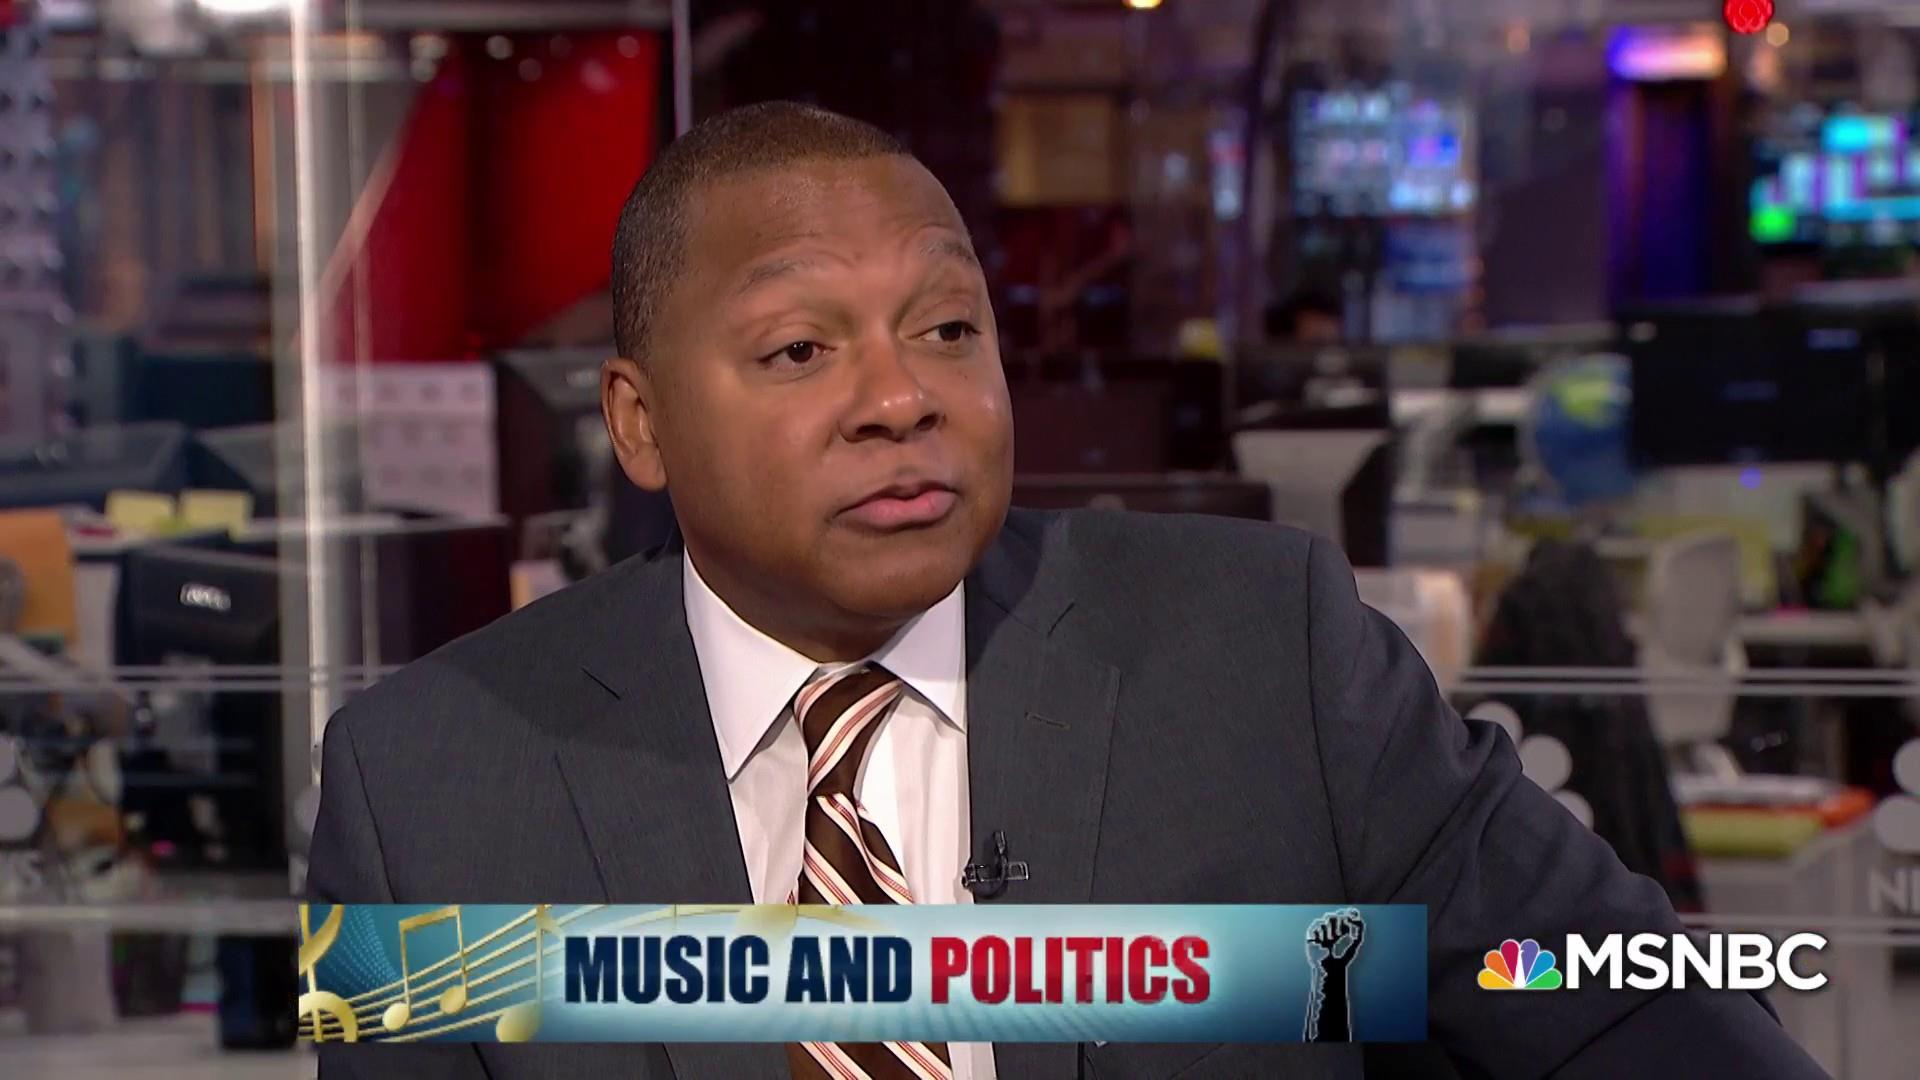 Music and Politics with Wynton Marsalis